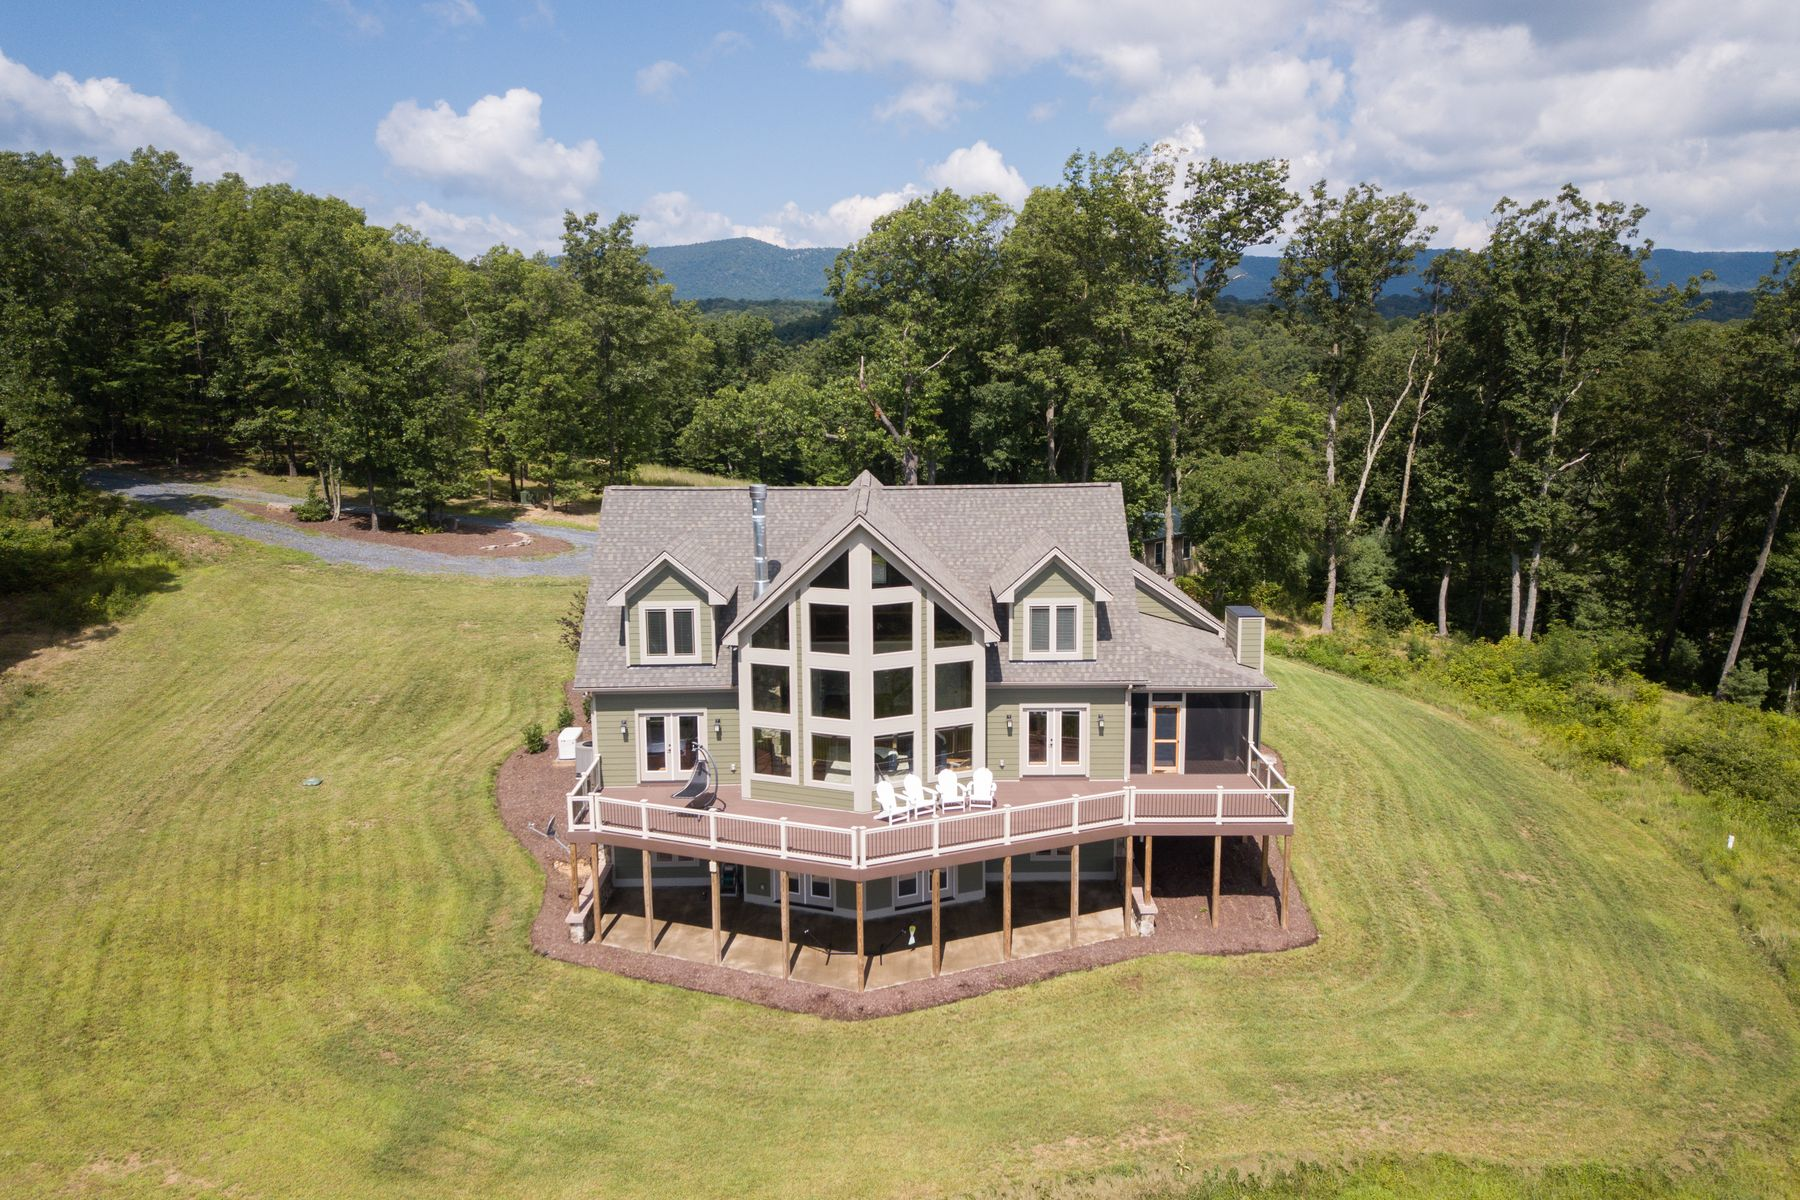 Single Family Home for Sale at Supinlick Ridge Retreat 13884 Supinlick Ridge RD Mount Jackson, Virginia 22842 United States